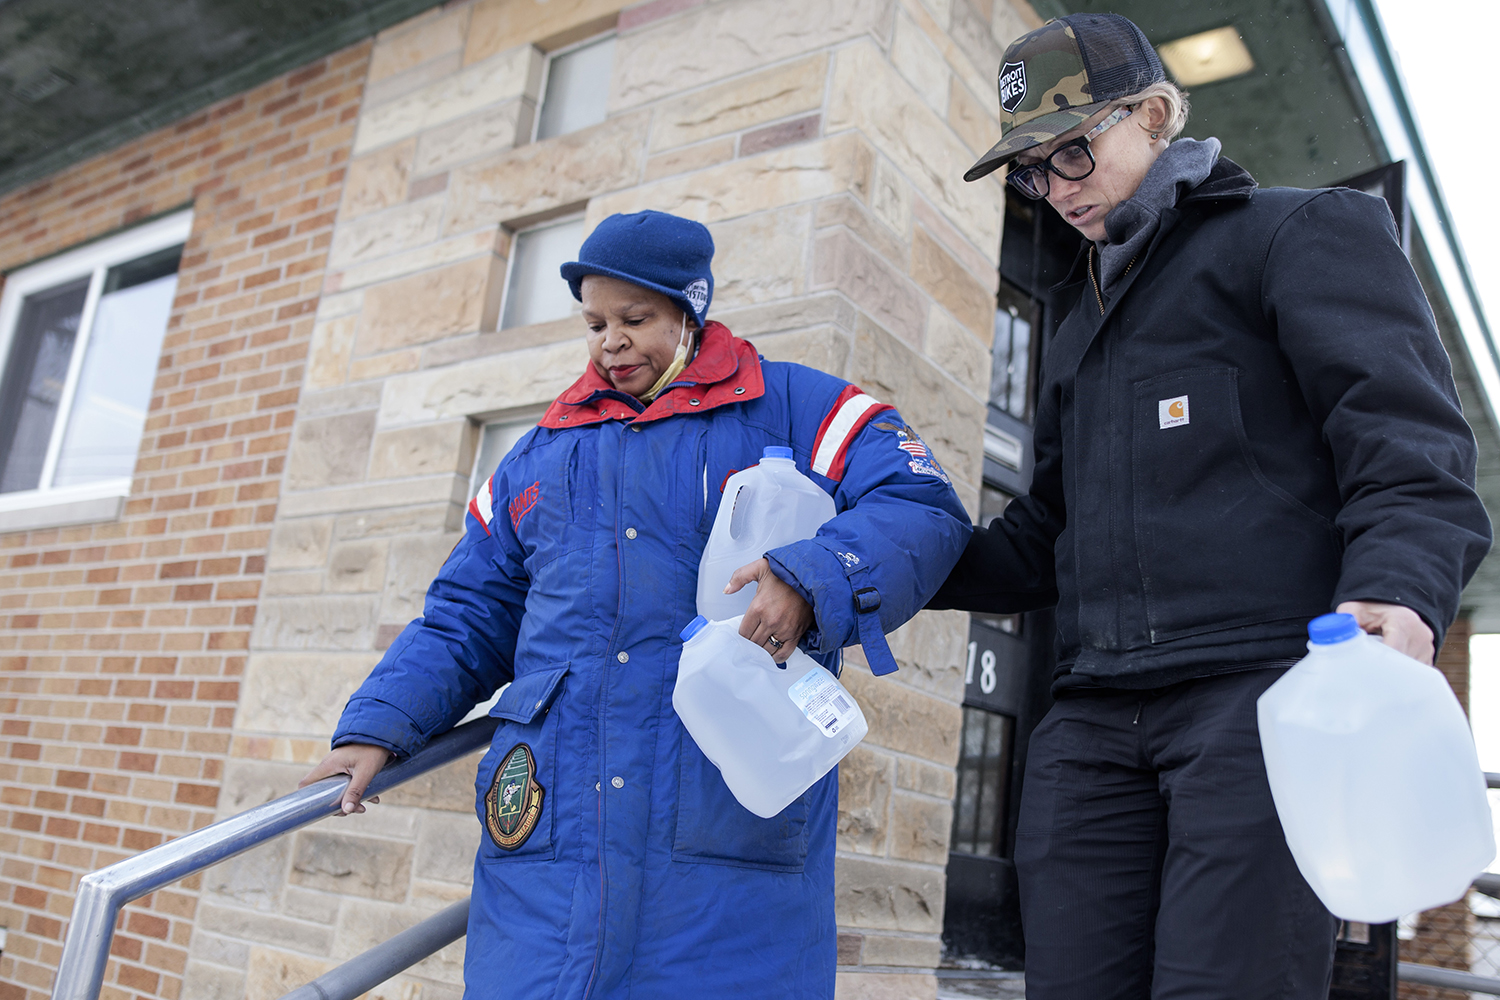 Terra Castro, right, from St. Clair Shores assists Flint resident Christine Brown down a flight of stairs while carrying water to her vehicle at the Mission of Hope - Universal Life Church on Wednesday, Jan. 20, 2016 in Flint, MI. Brown suffered from rashes due to showering under the Flint water. Tim Galloway for The Wall Street Journal